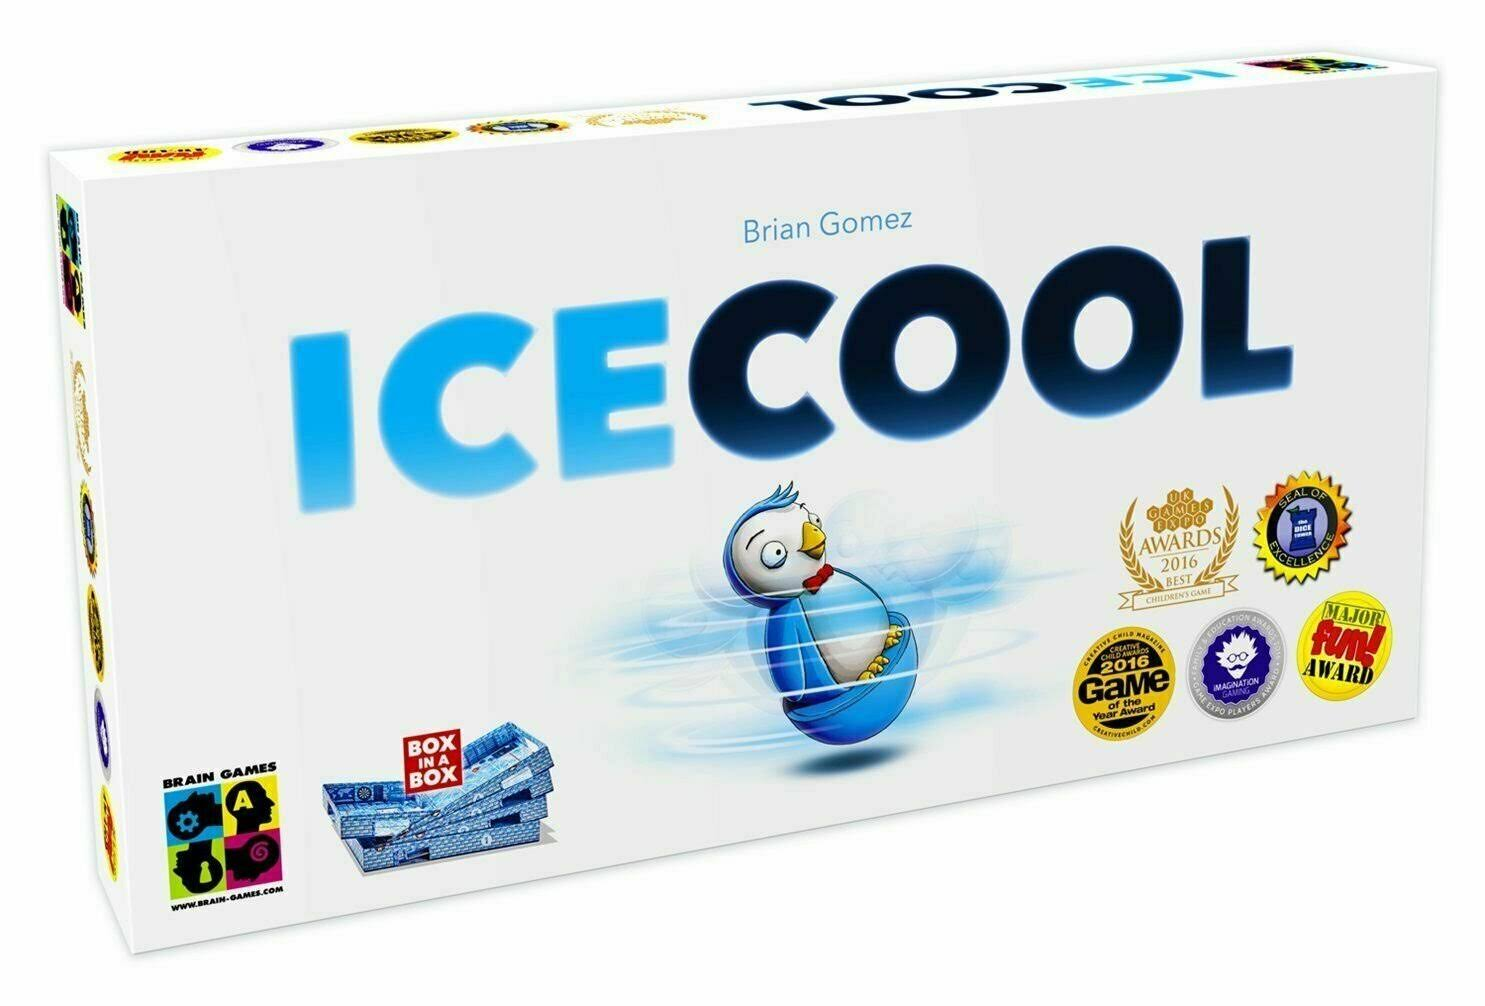 Brain Games Ice Cool Game